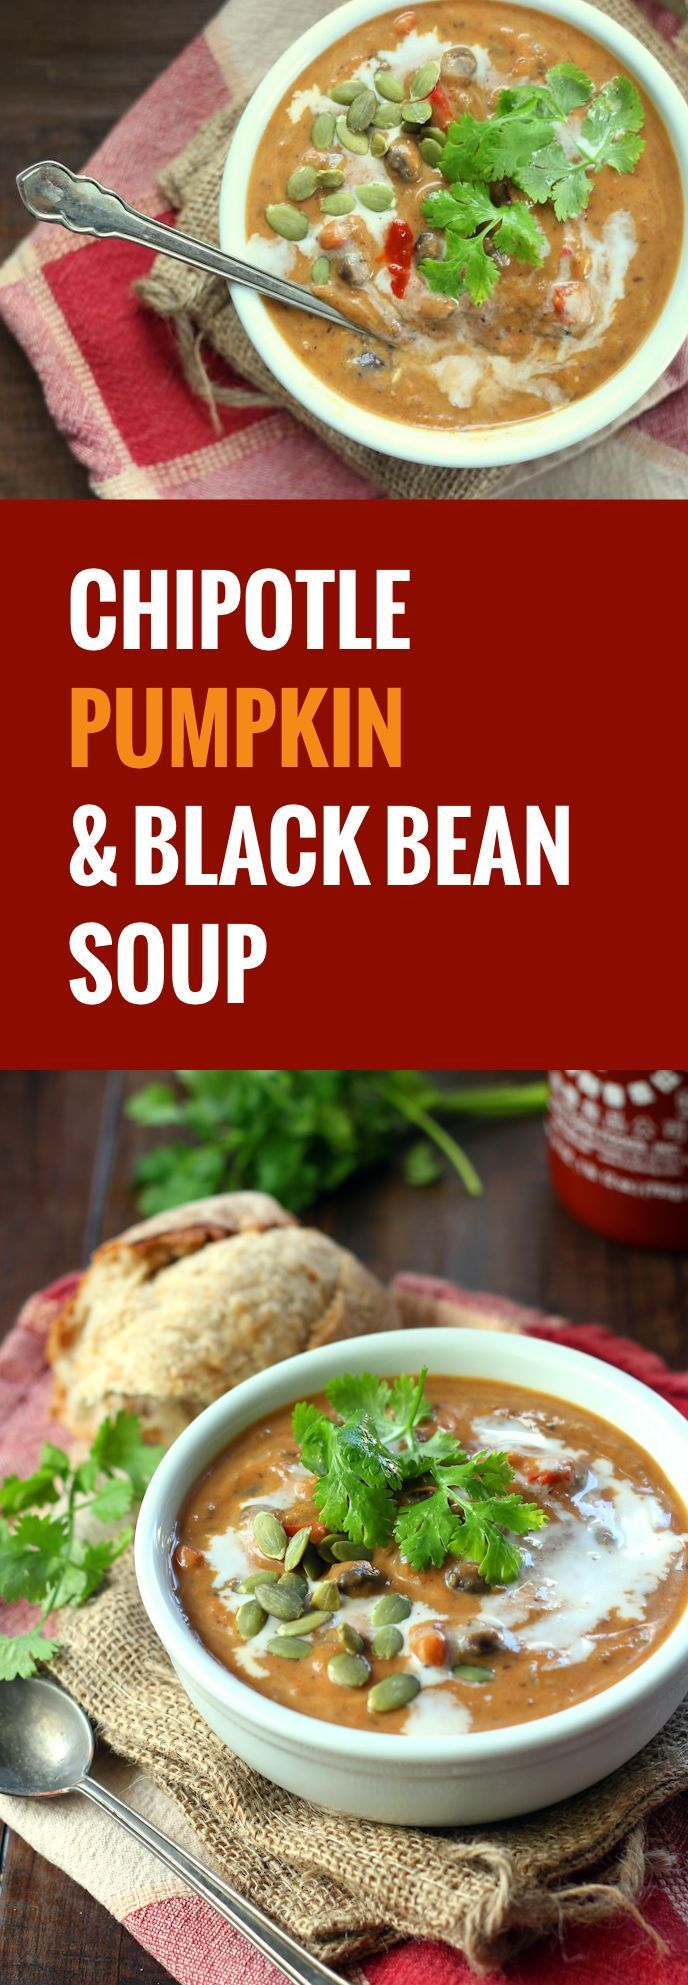 This creamy pumpkin black bean soup is made with a rich coconut milk ...